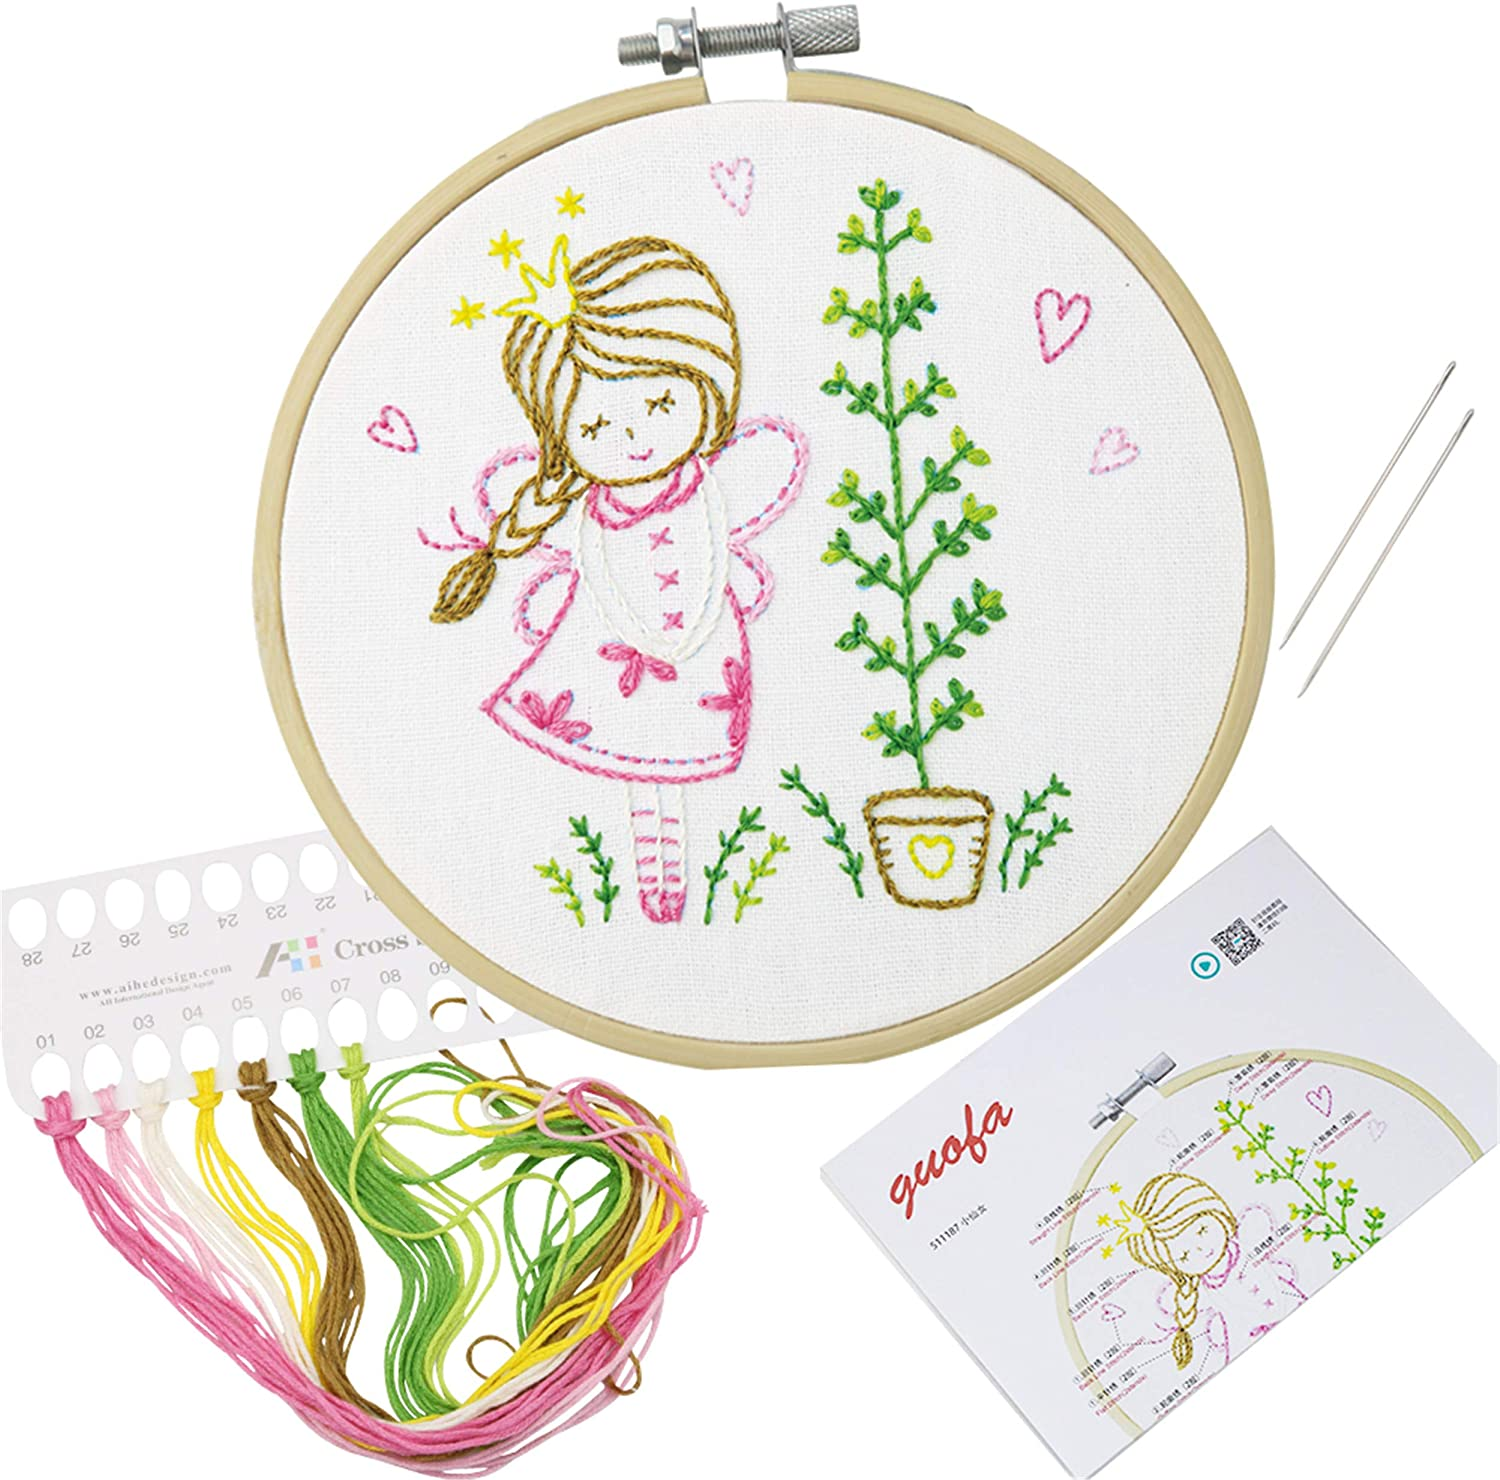 Embroidery Cloth 511182 Color Threads Neddle and Instruction for Beginners Full Range of Handmade Embroidery Starter Kit with Various Patterns Including Embroidery Hoop